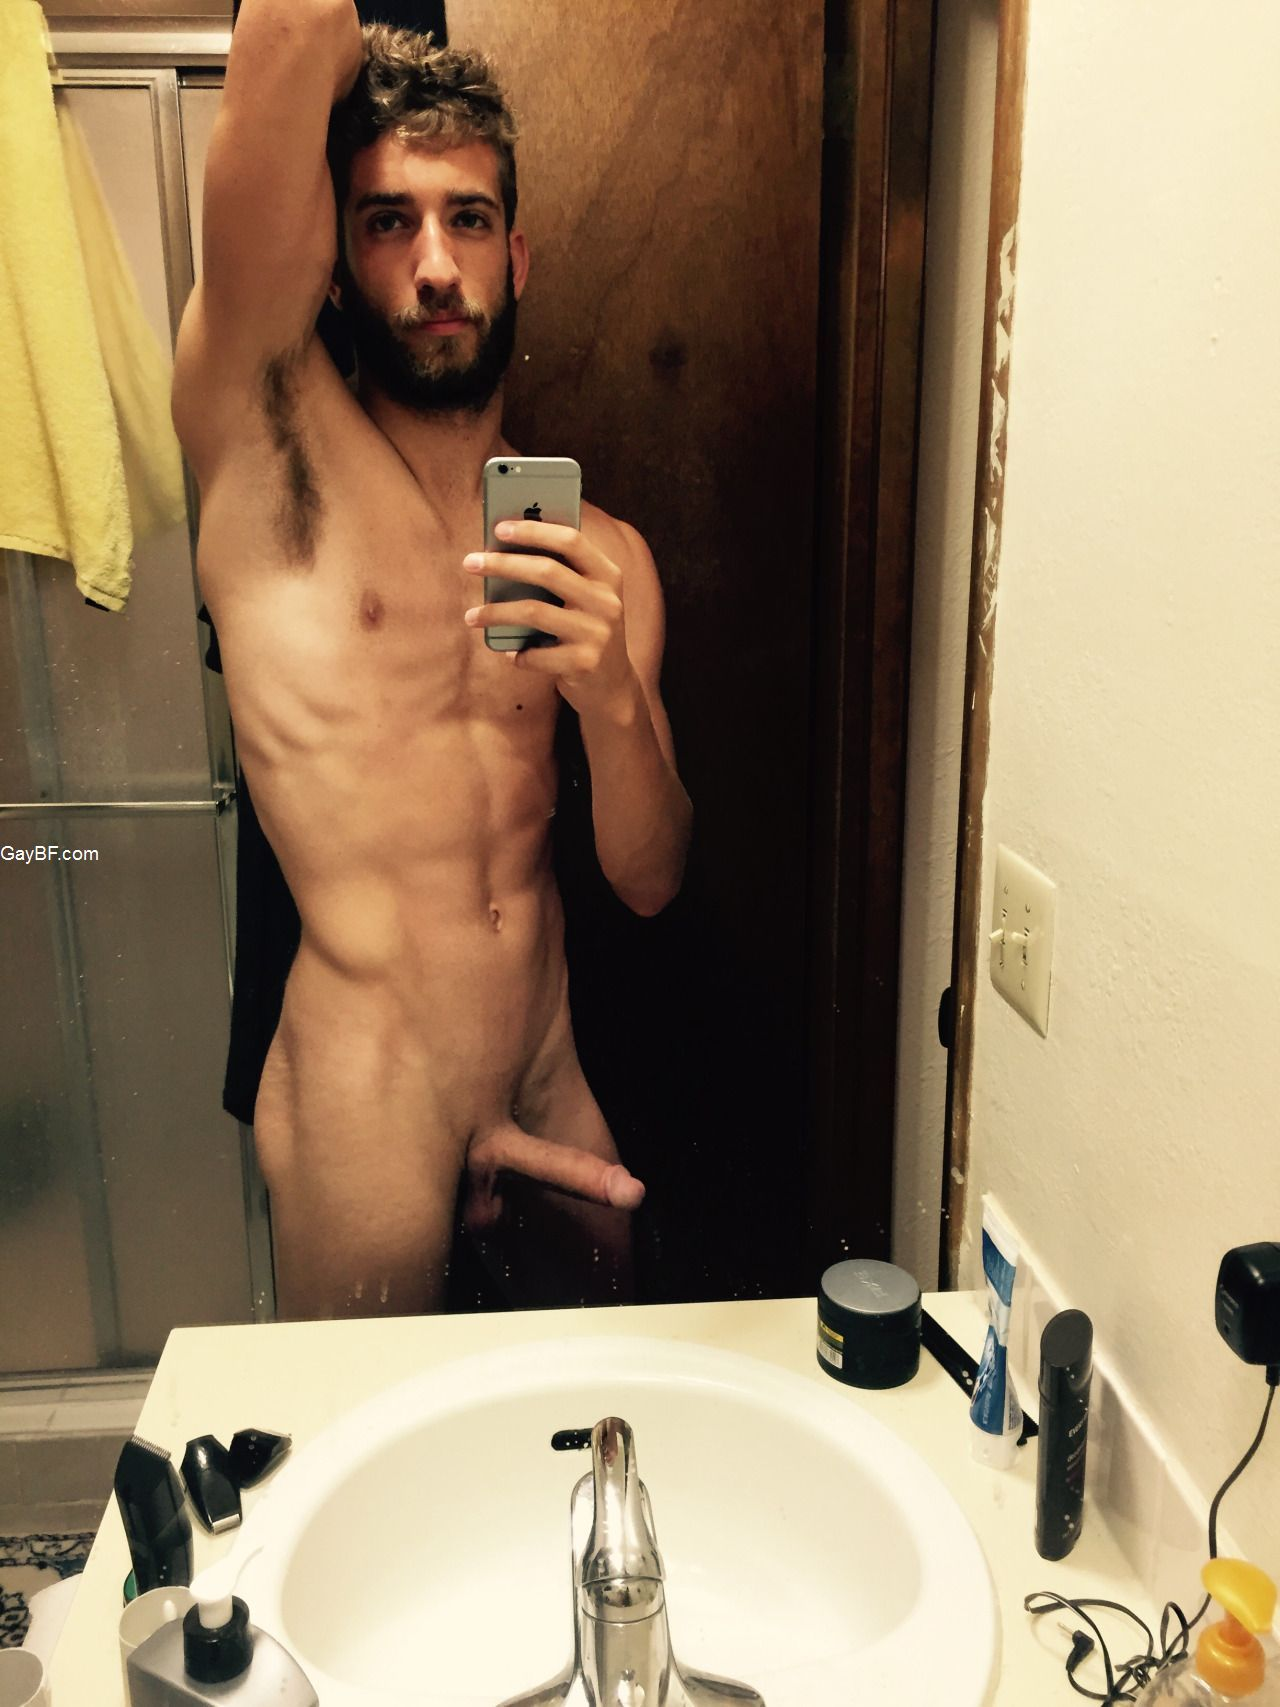 Straight Guys Naked Selfies  Gay Bf - Free Real Amateur -6866